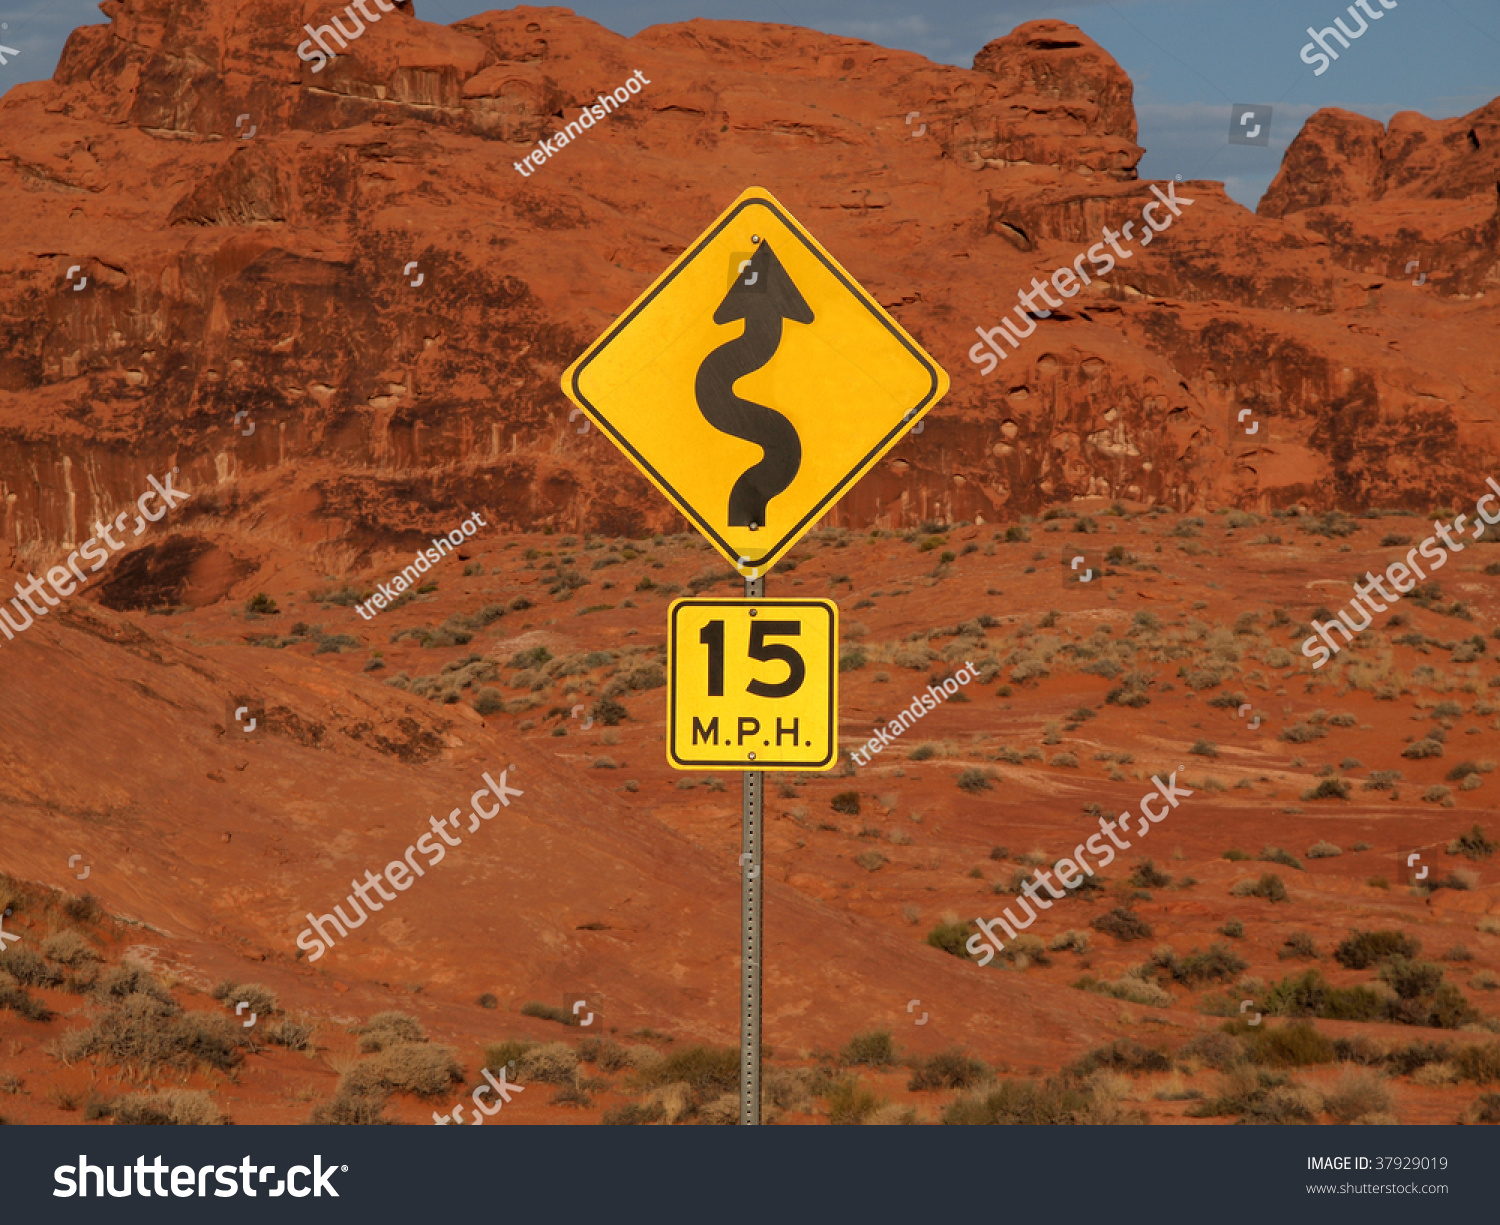 Desert curves ahead highway sign with cliff backdrop. #37929019